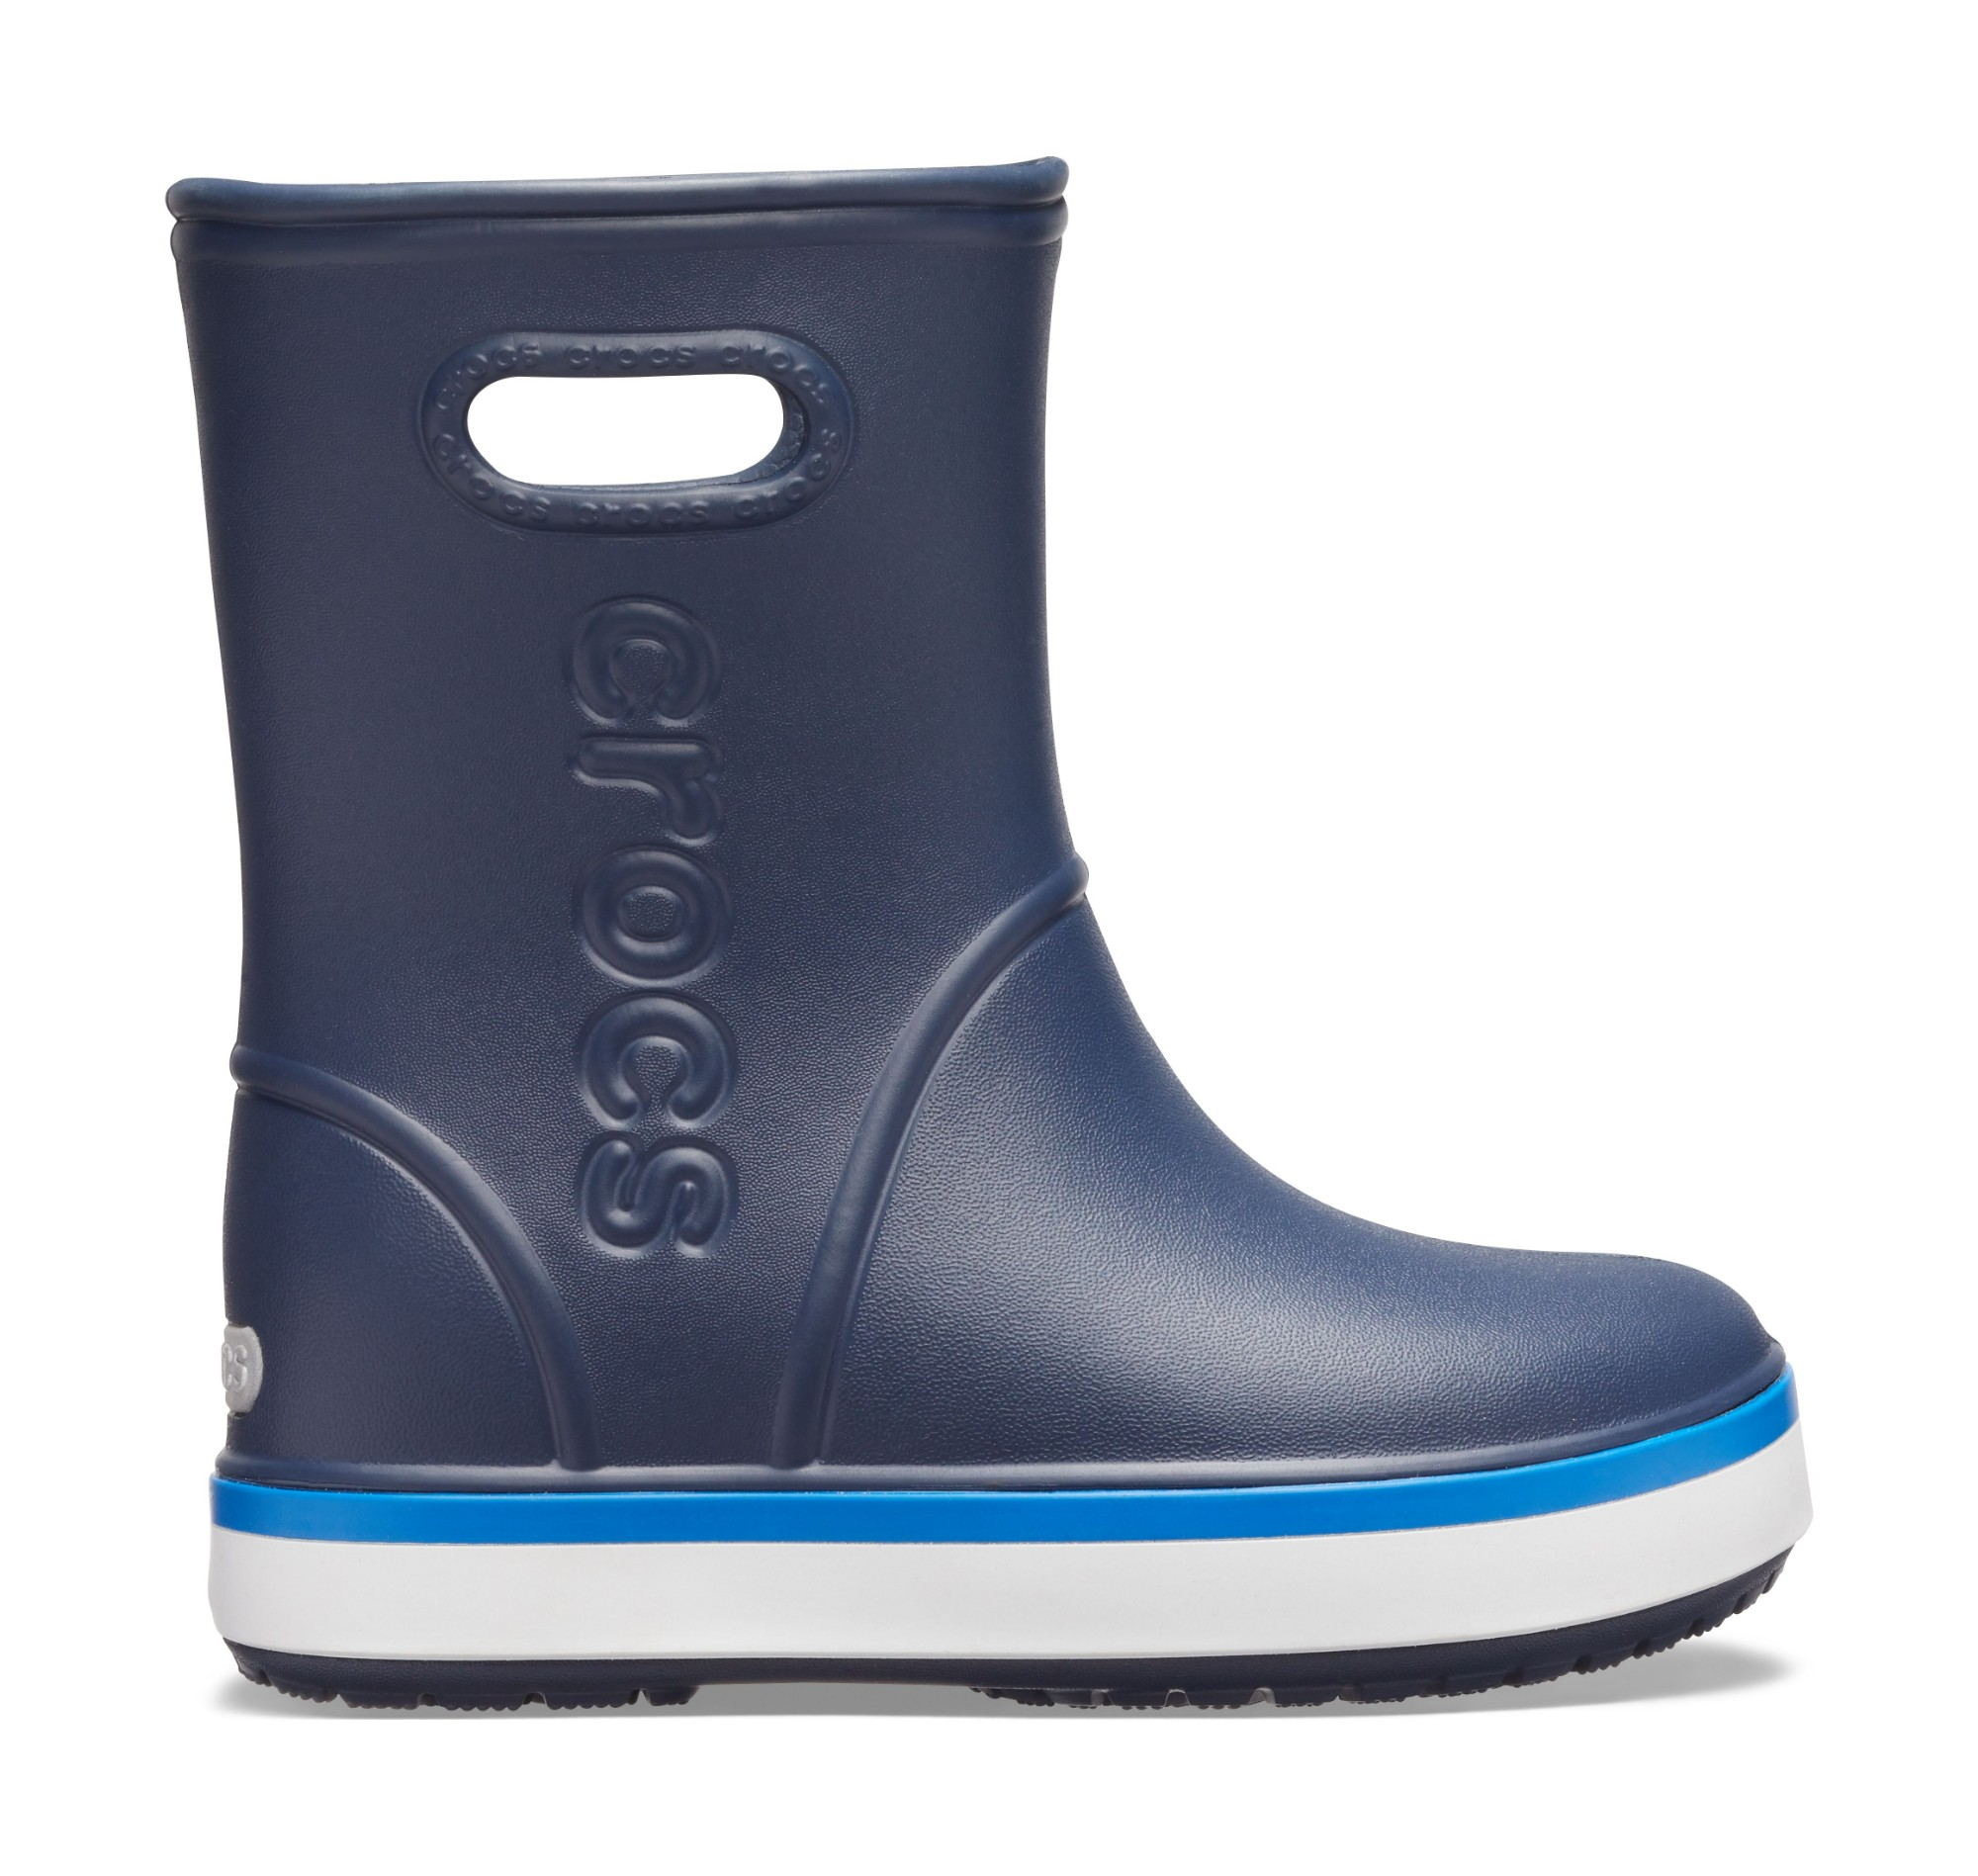 Crocs™ Crocband Rain Boot Kid's Navy/Bright Cobalt 27